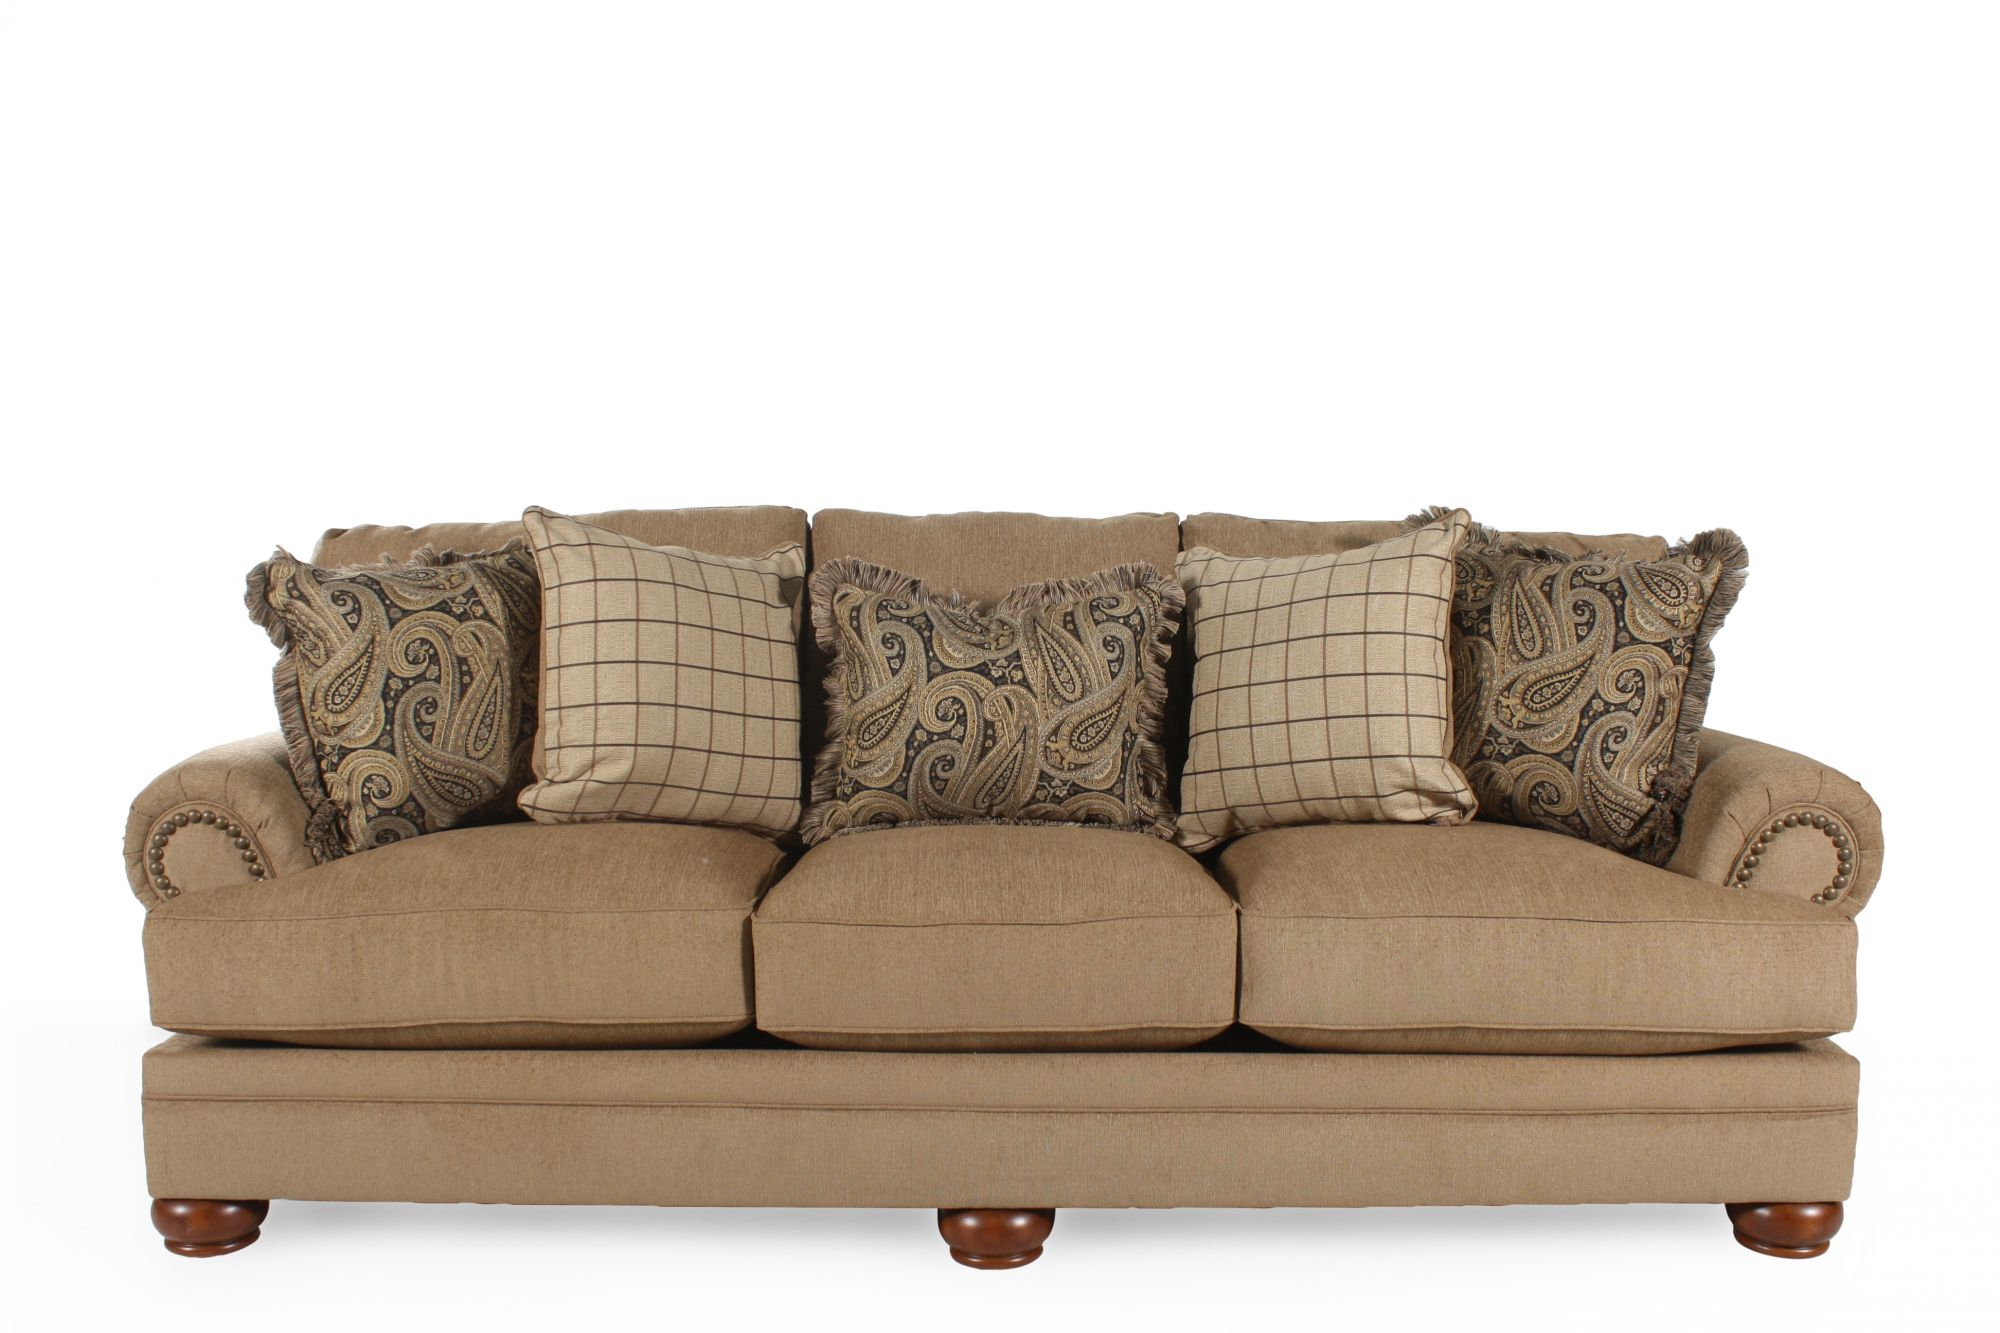 Marvellous ashley furniture columbus ga for living room ideas with ashley furniture columbus ohio